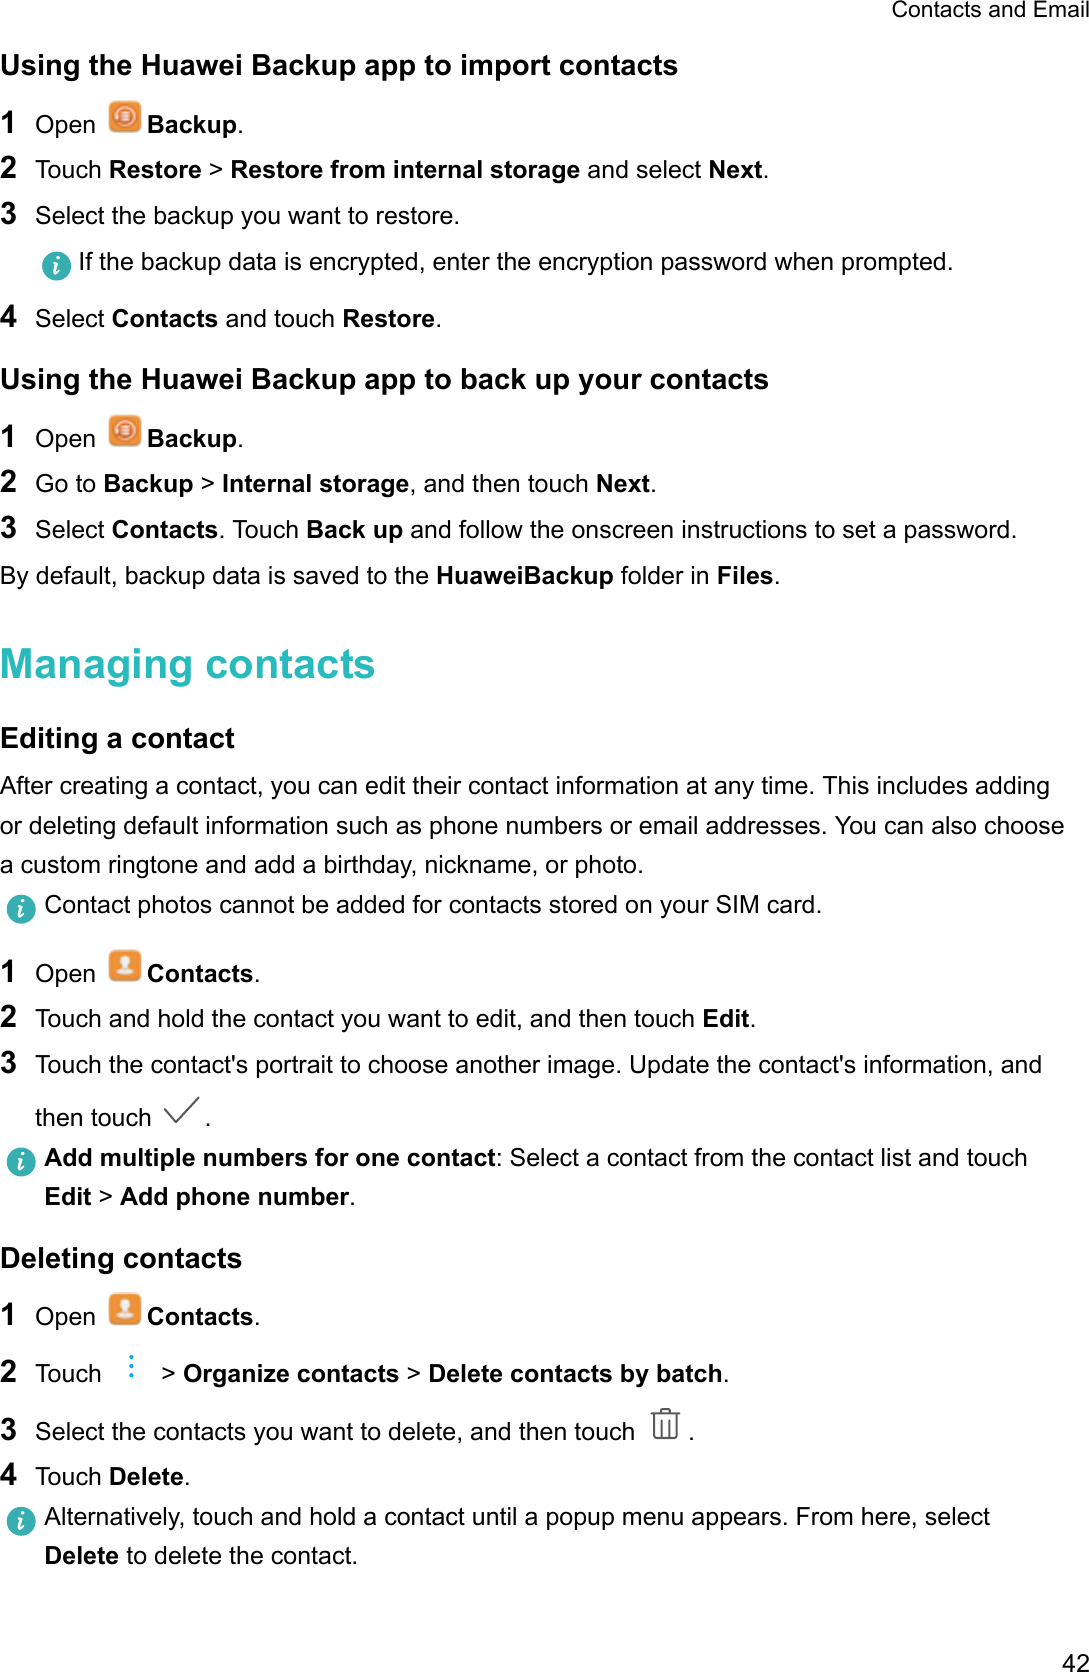 Huawei Email App